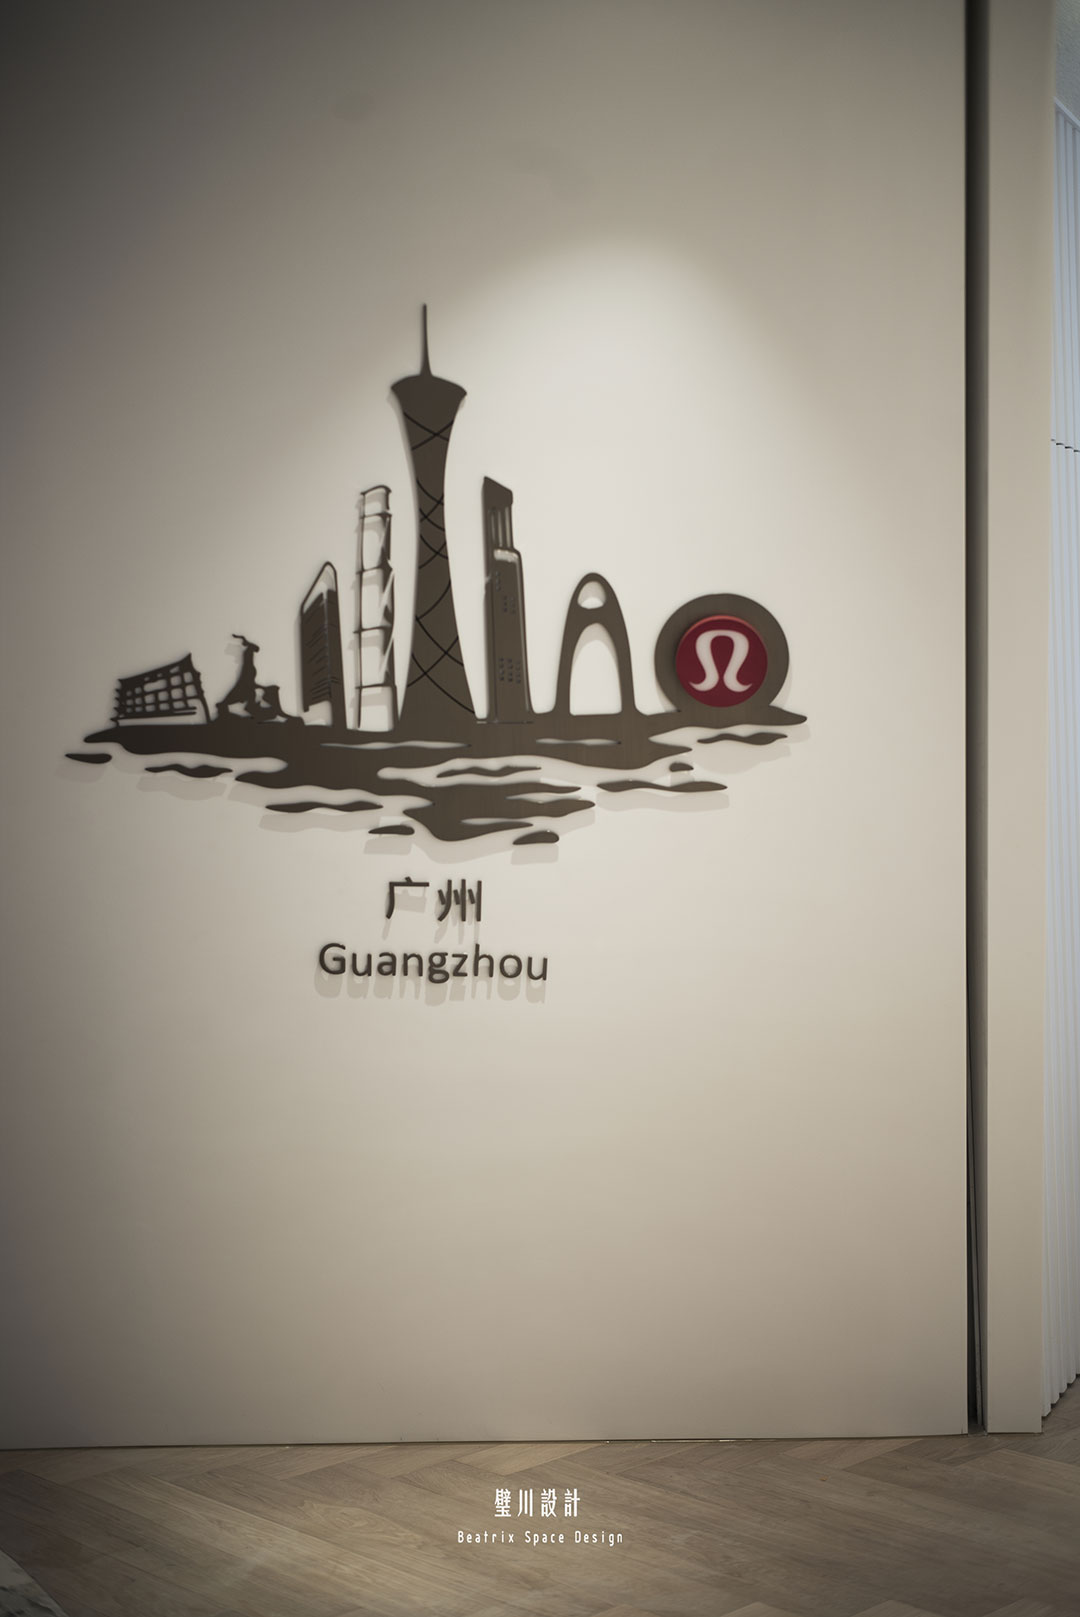 lululemon_GuangzhouParcCentral_6